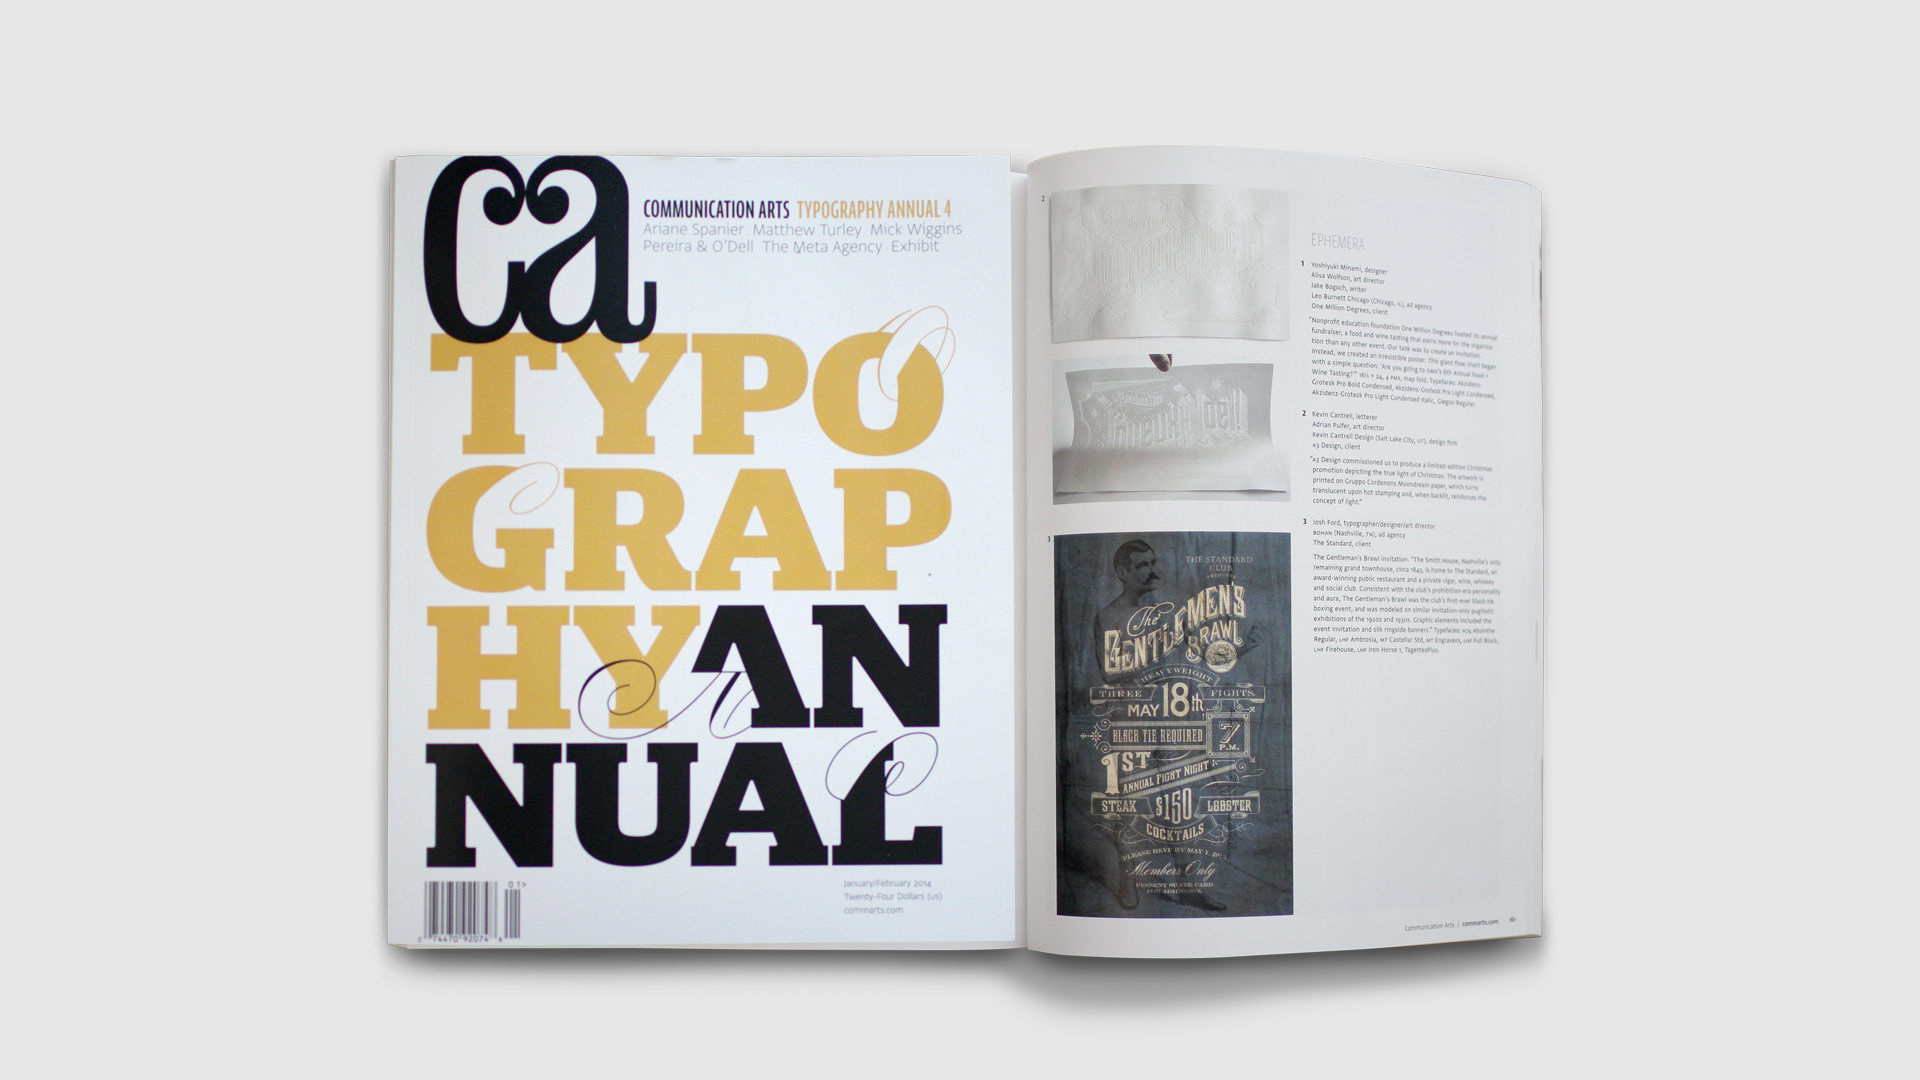 bohan | The Standard feature in Communication Arts Typography Annual